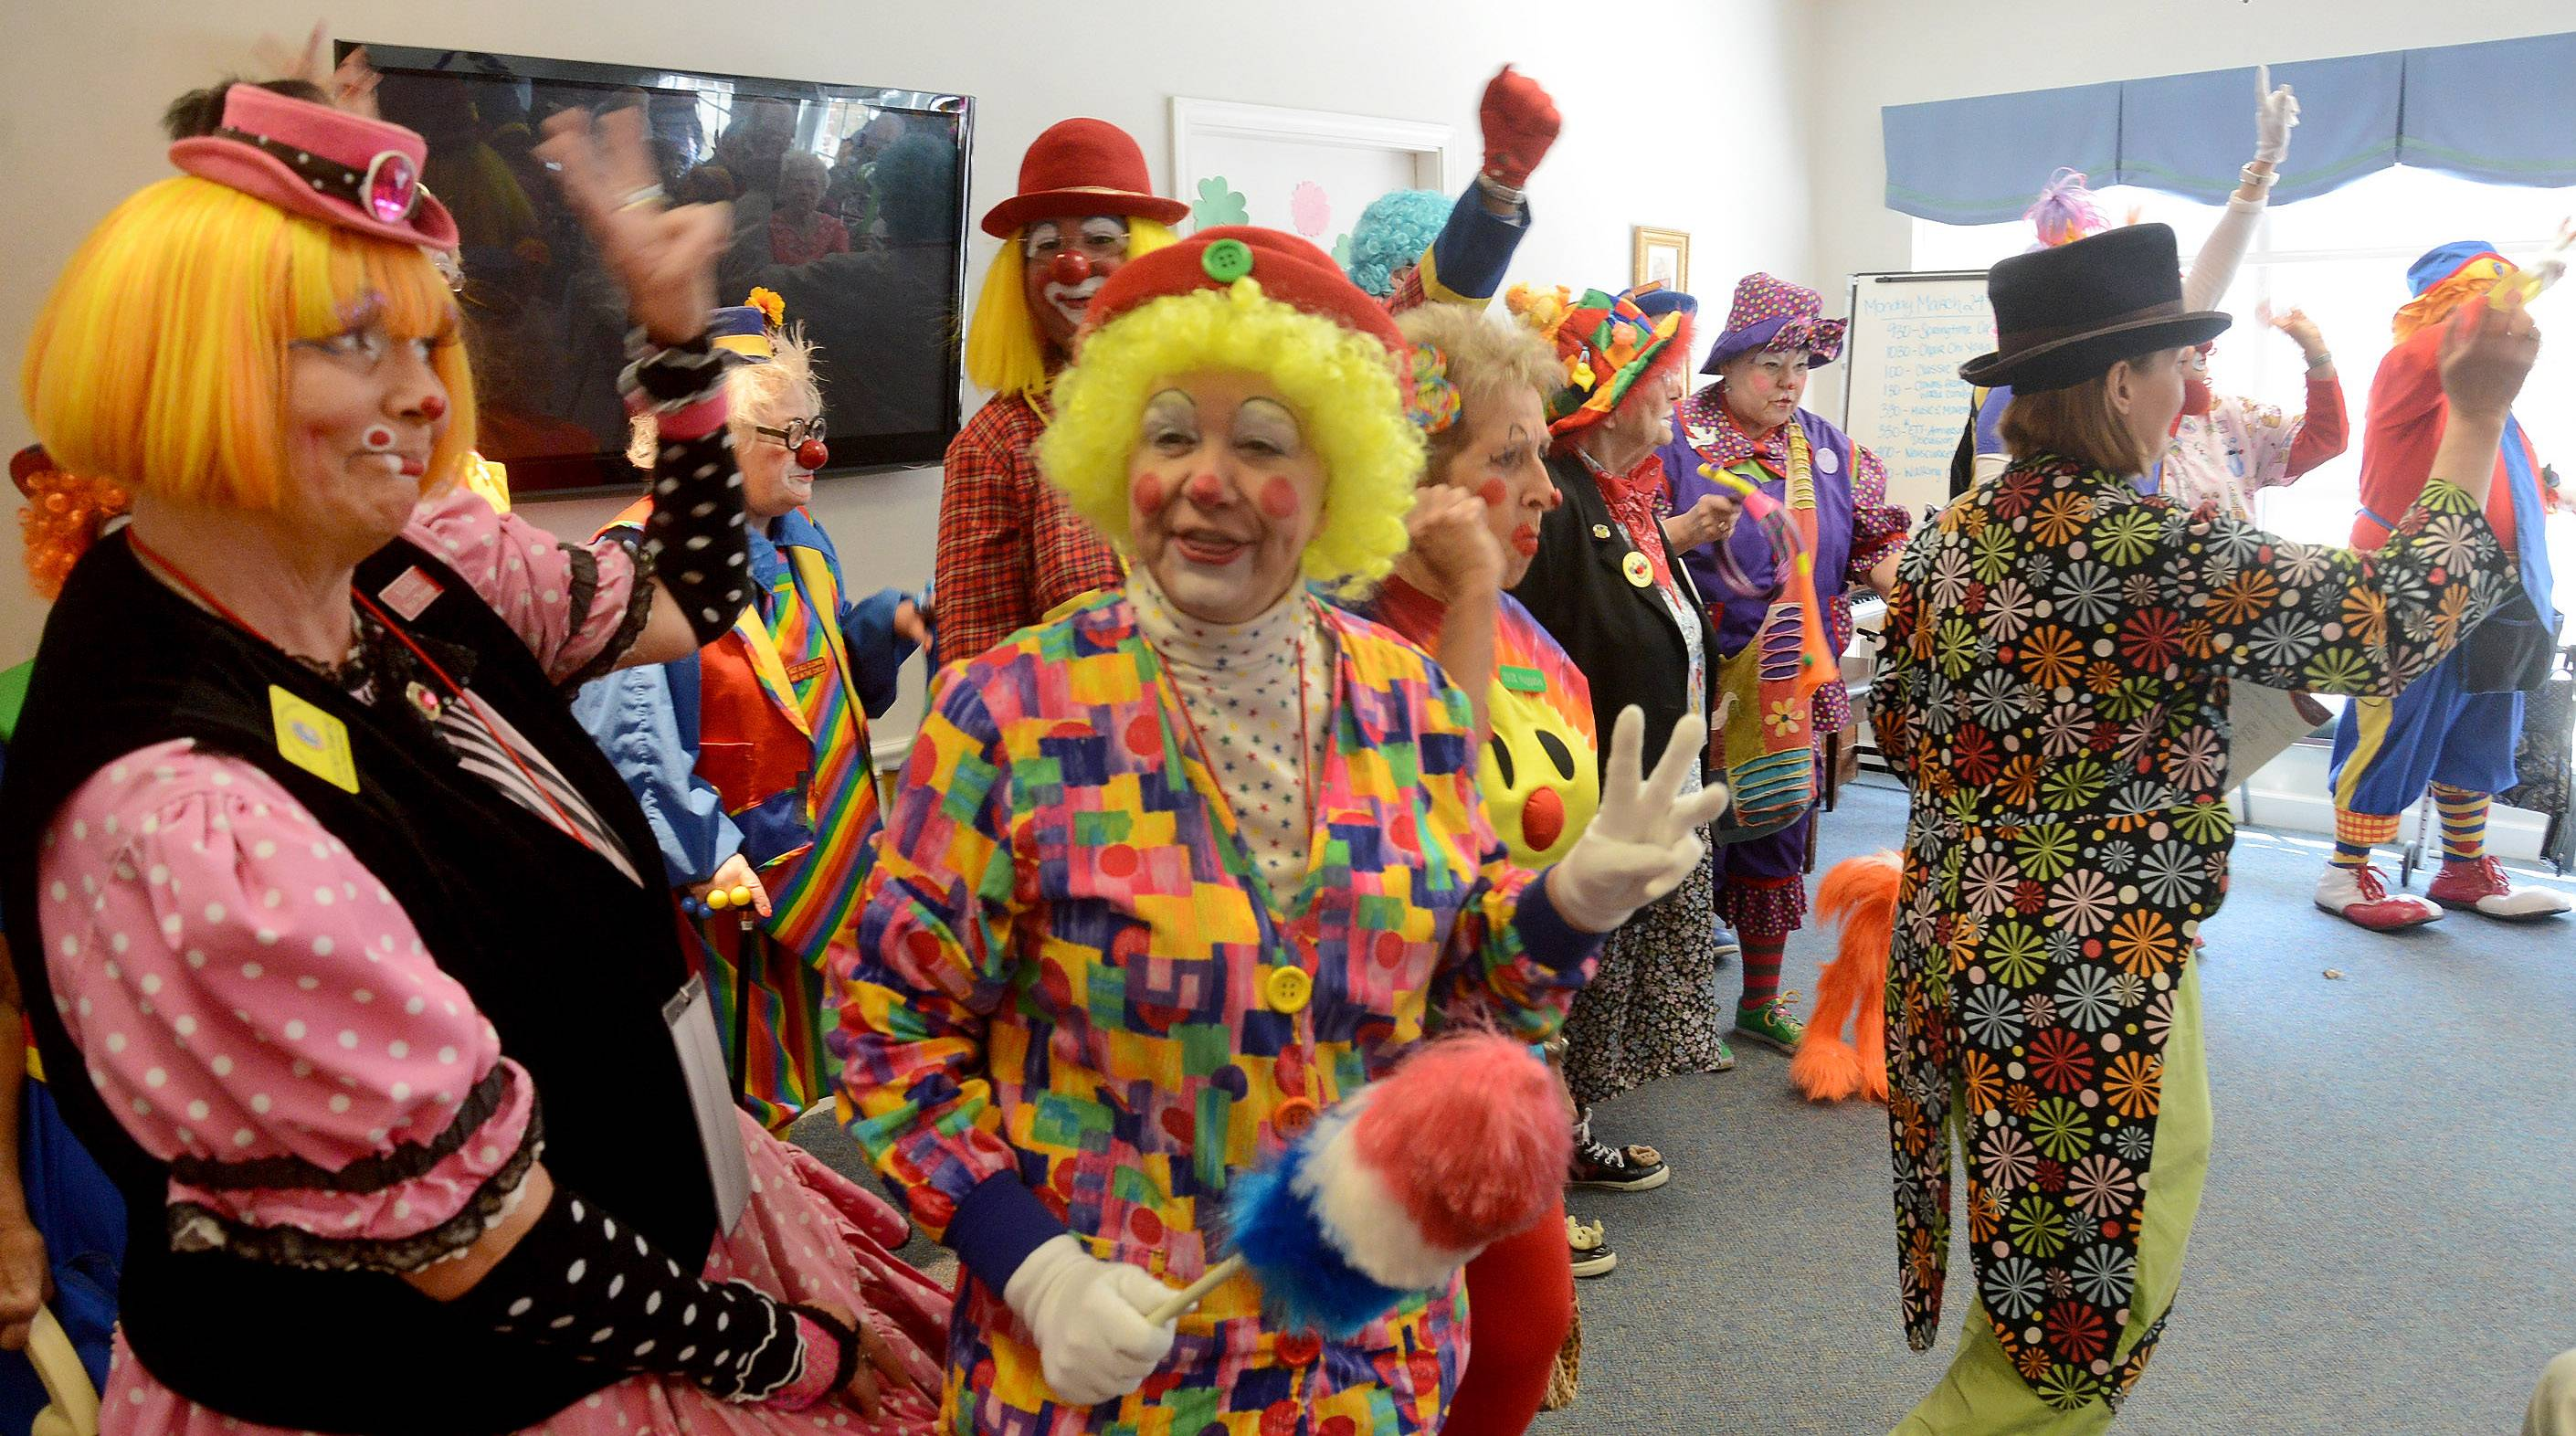 Clowns visit patients Monday in the Arden Courts of Northbrook.